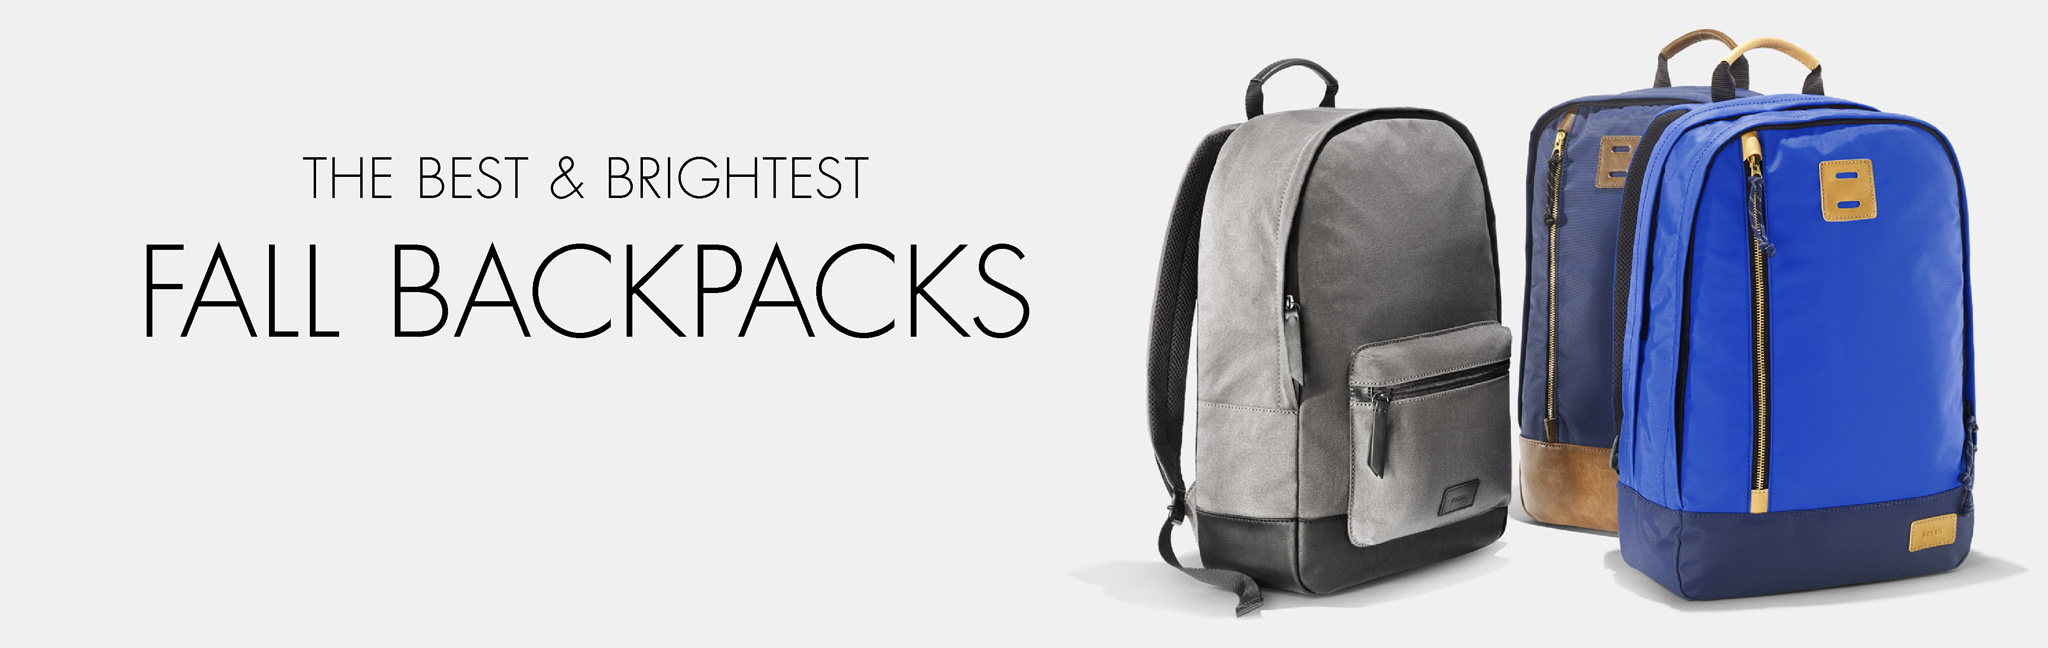 Fall Backpacks